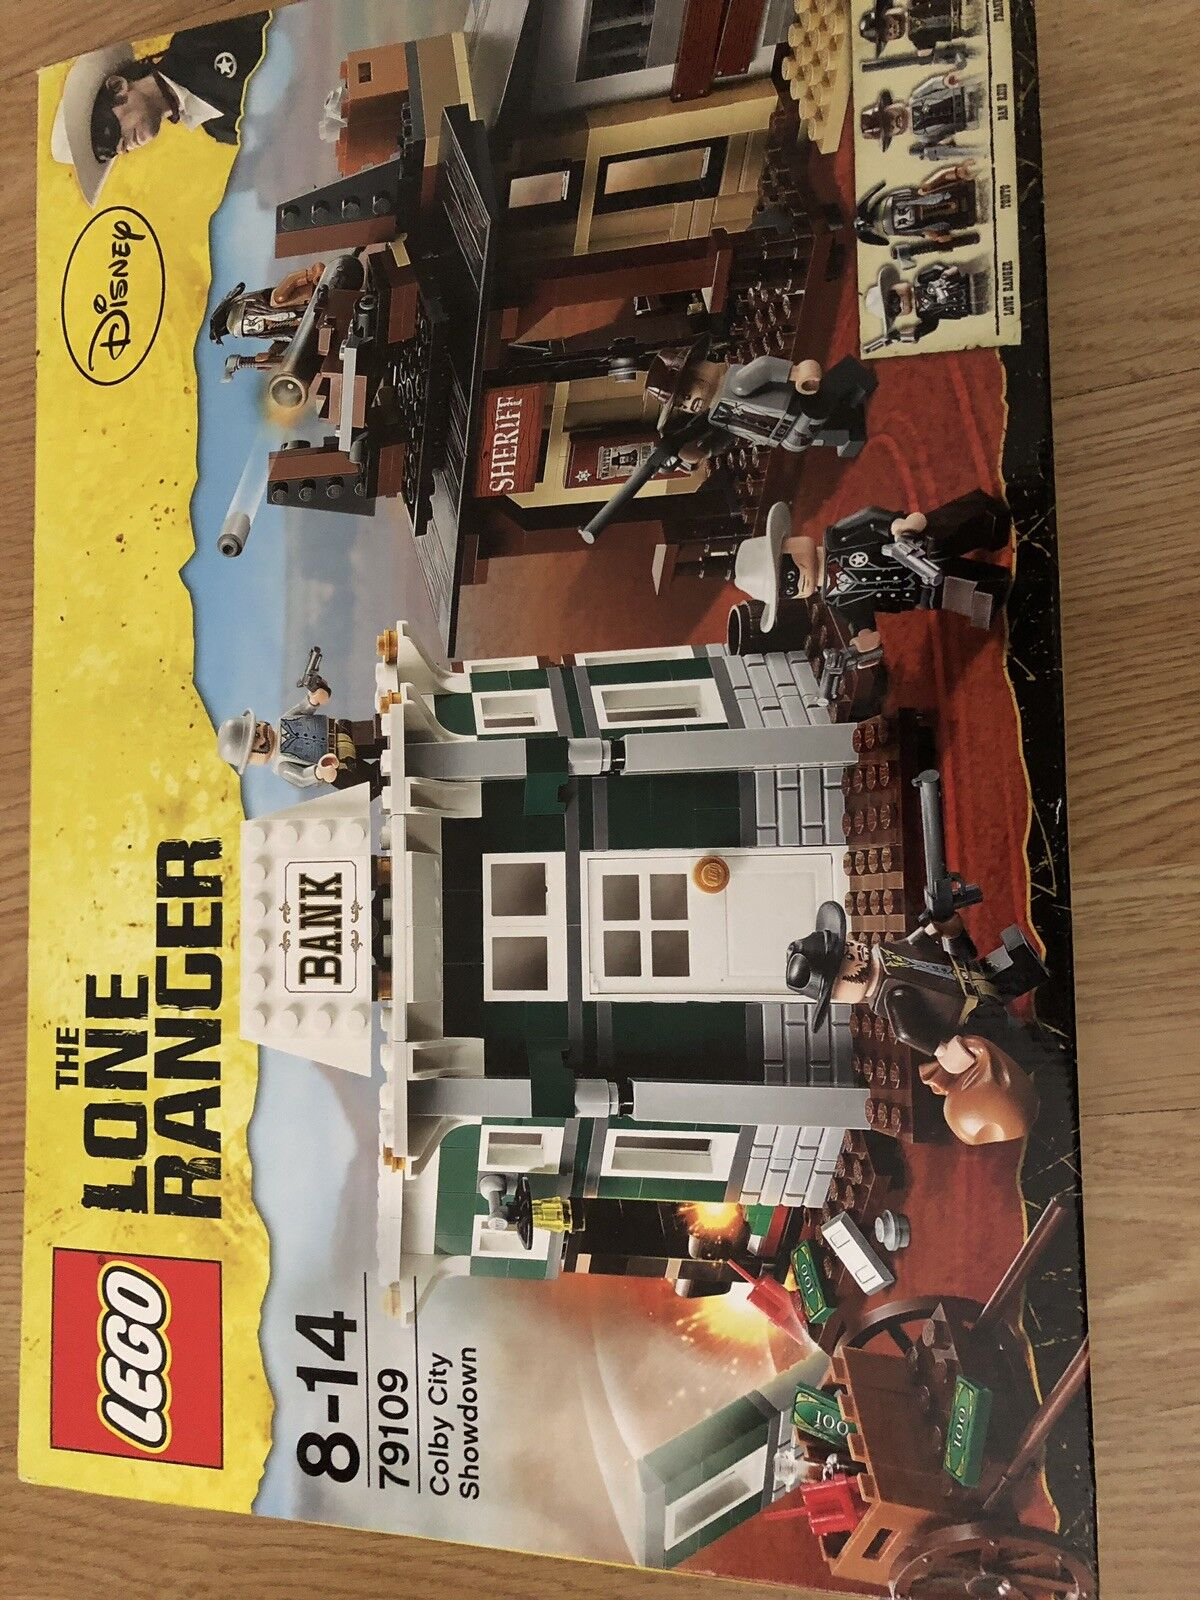 Lego 79109 The Lone Ranger Colby City Showdown Cowboy Bank Robbery